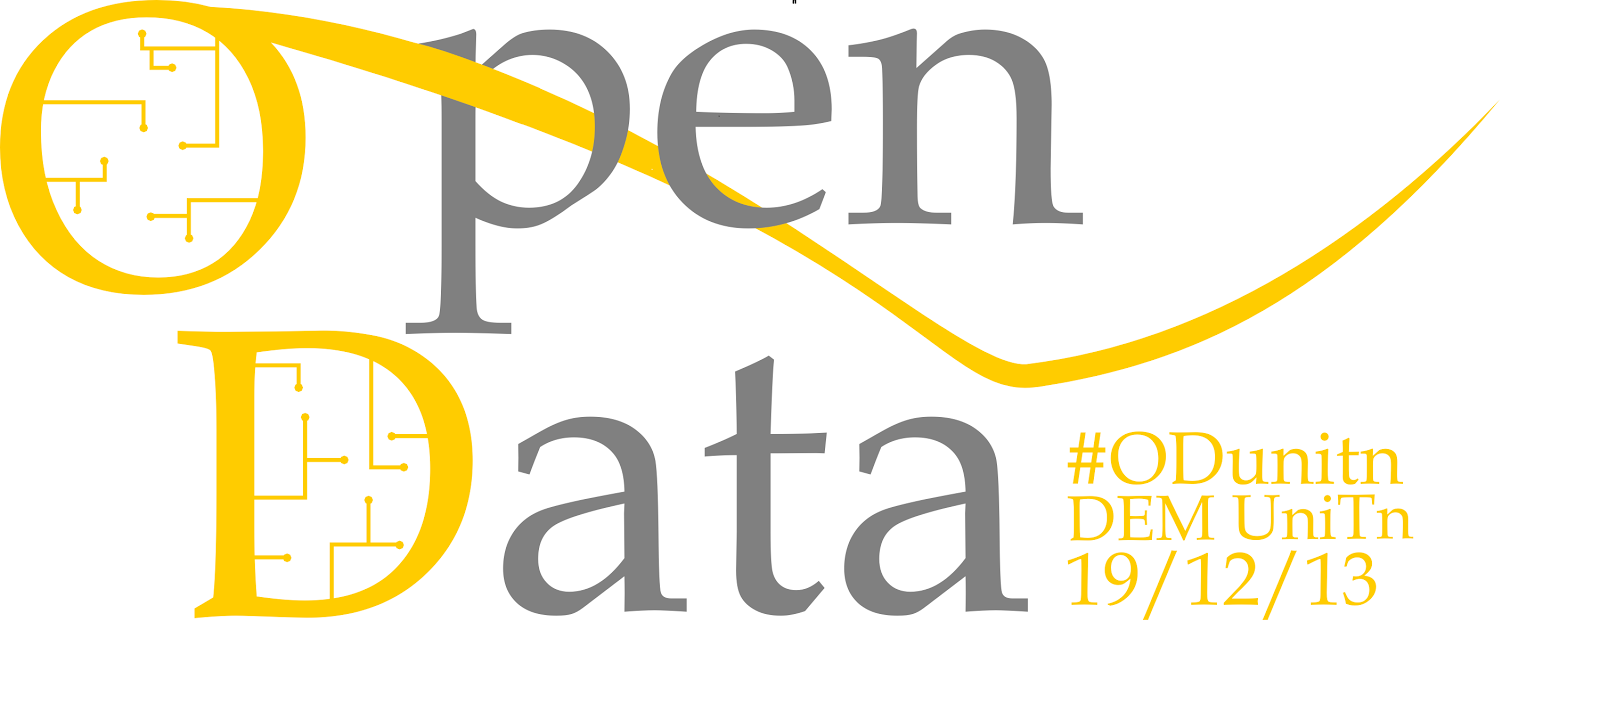 OPEN DATA UNITN/WIPO